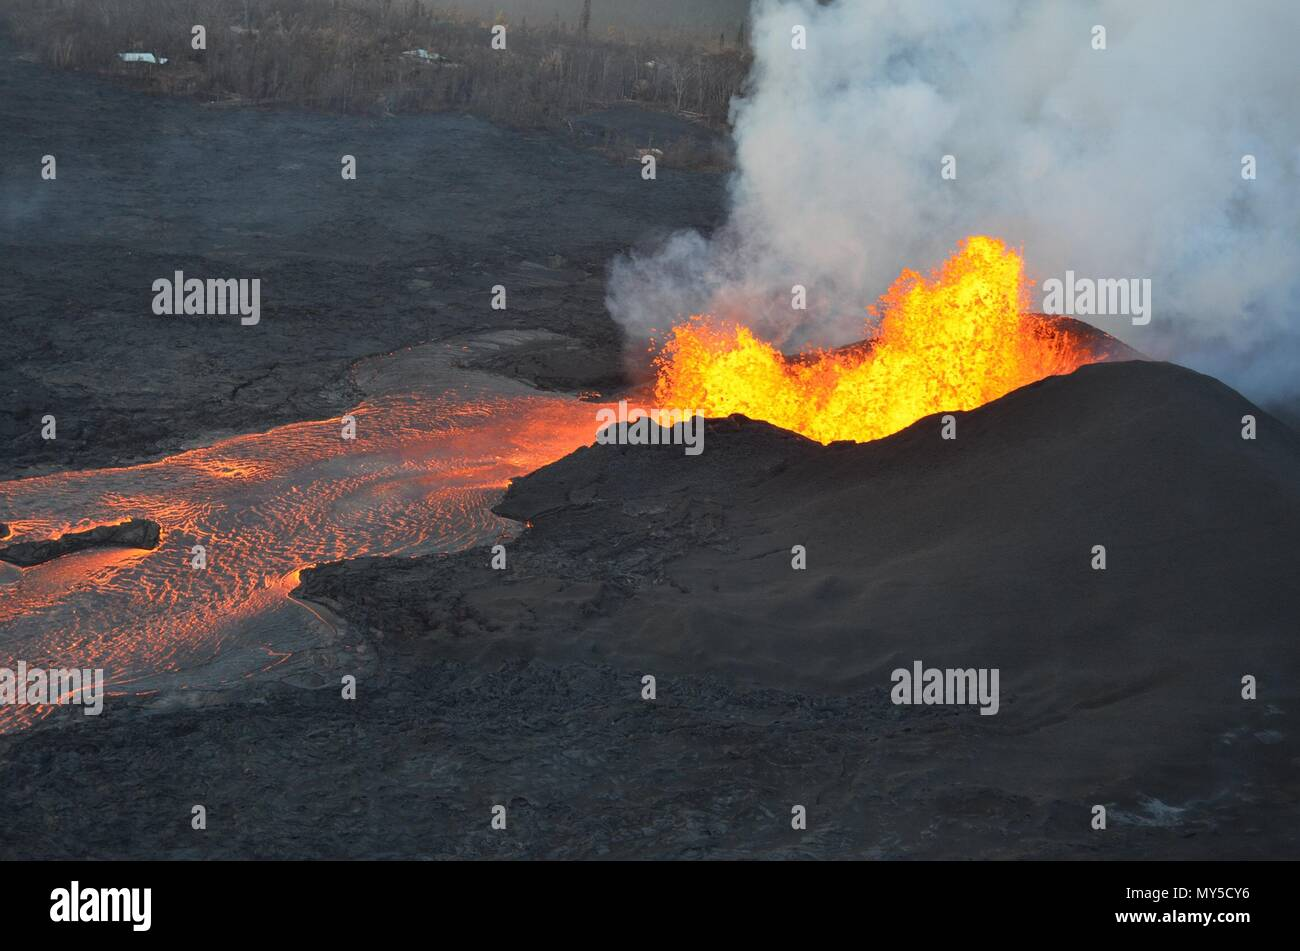 A massive lava fountain spewing magma 160 feet into the air from fissure 8 at the corner of Nohea and Leilani caused by the eruption of the Kilauea volcano June 5, 2018 in Hawaii. The recent eruption continues destroying homes, forcing evacuations and spewing lava and poison gas on the Big Island of Hawaii. - Stock Image